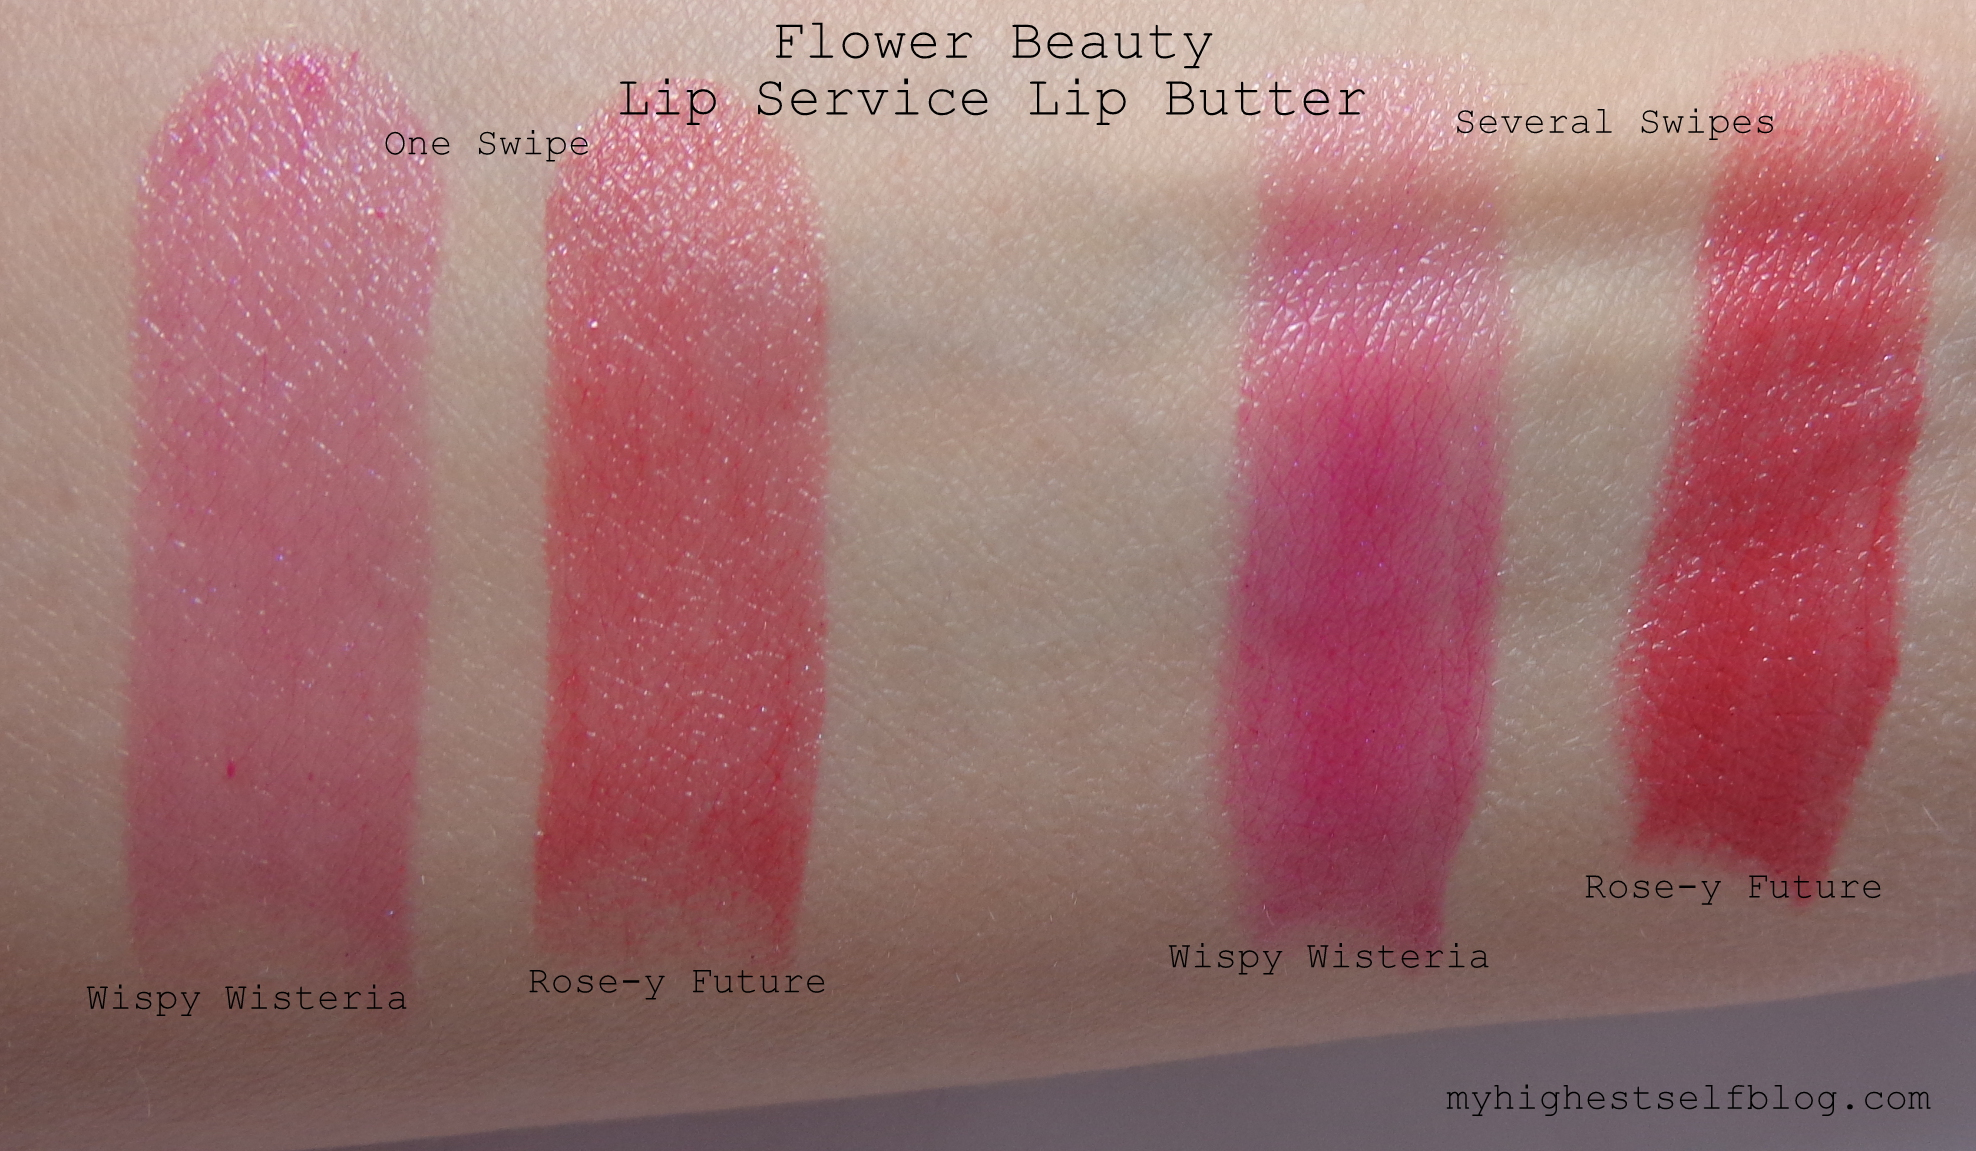 Flower beauty by drew barrymore lip service lip butter wispy flower beauty lipstick swatches review lip service izmirmasajfo